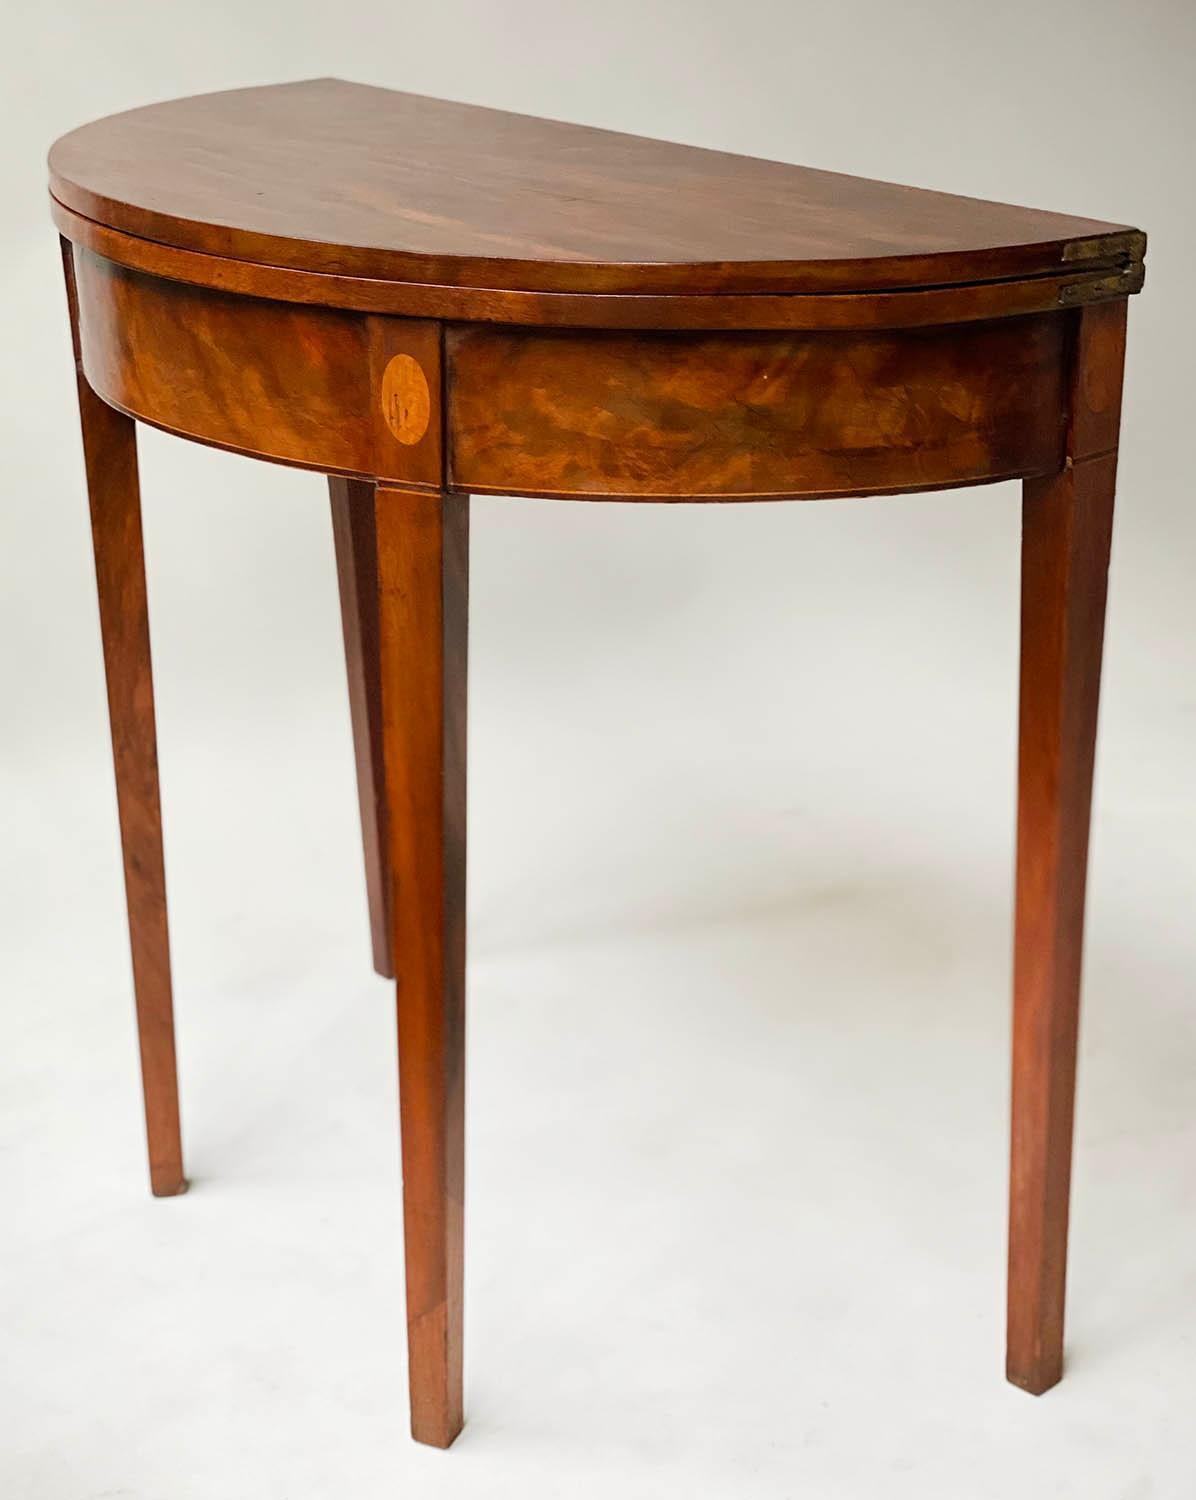 TEA TABLE, George III flame mahogany with demi lune foldover top and satinwood paterae headed - Image 3 of 6